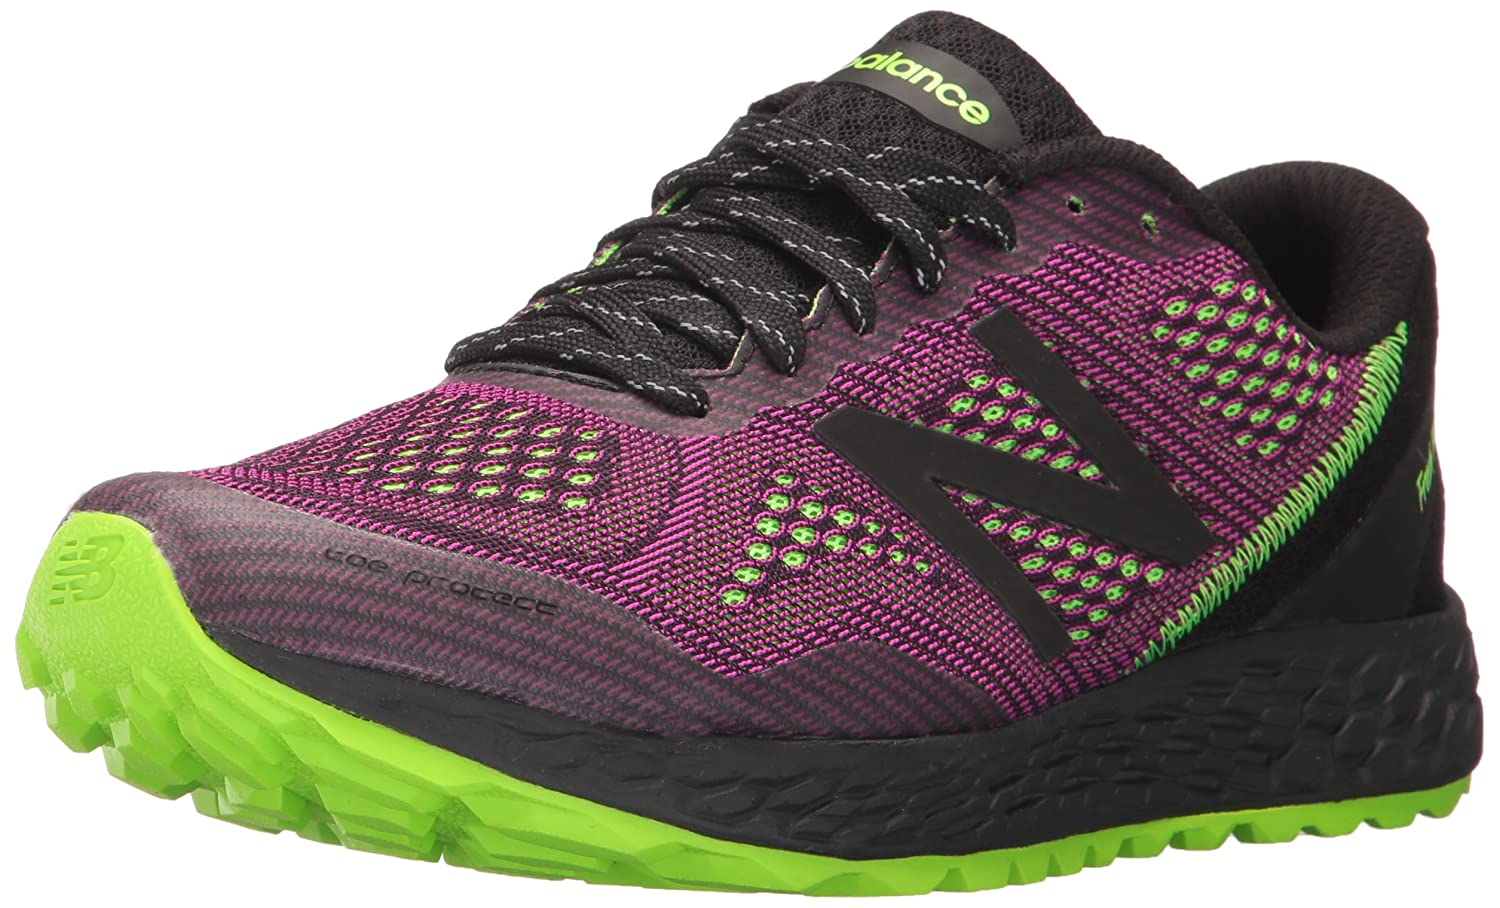 New Balance B01MTQ89AT Women's Gobiv2 Running Shoe B01MTQ89AT Balance 7.5 B(M) US|Poisonberry/Black 816e7a